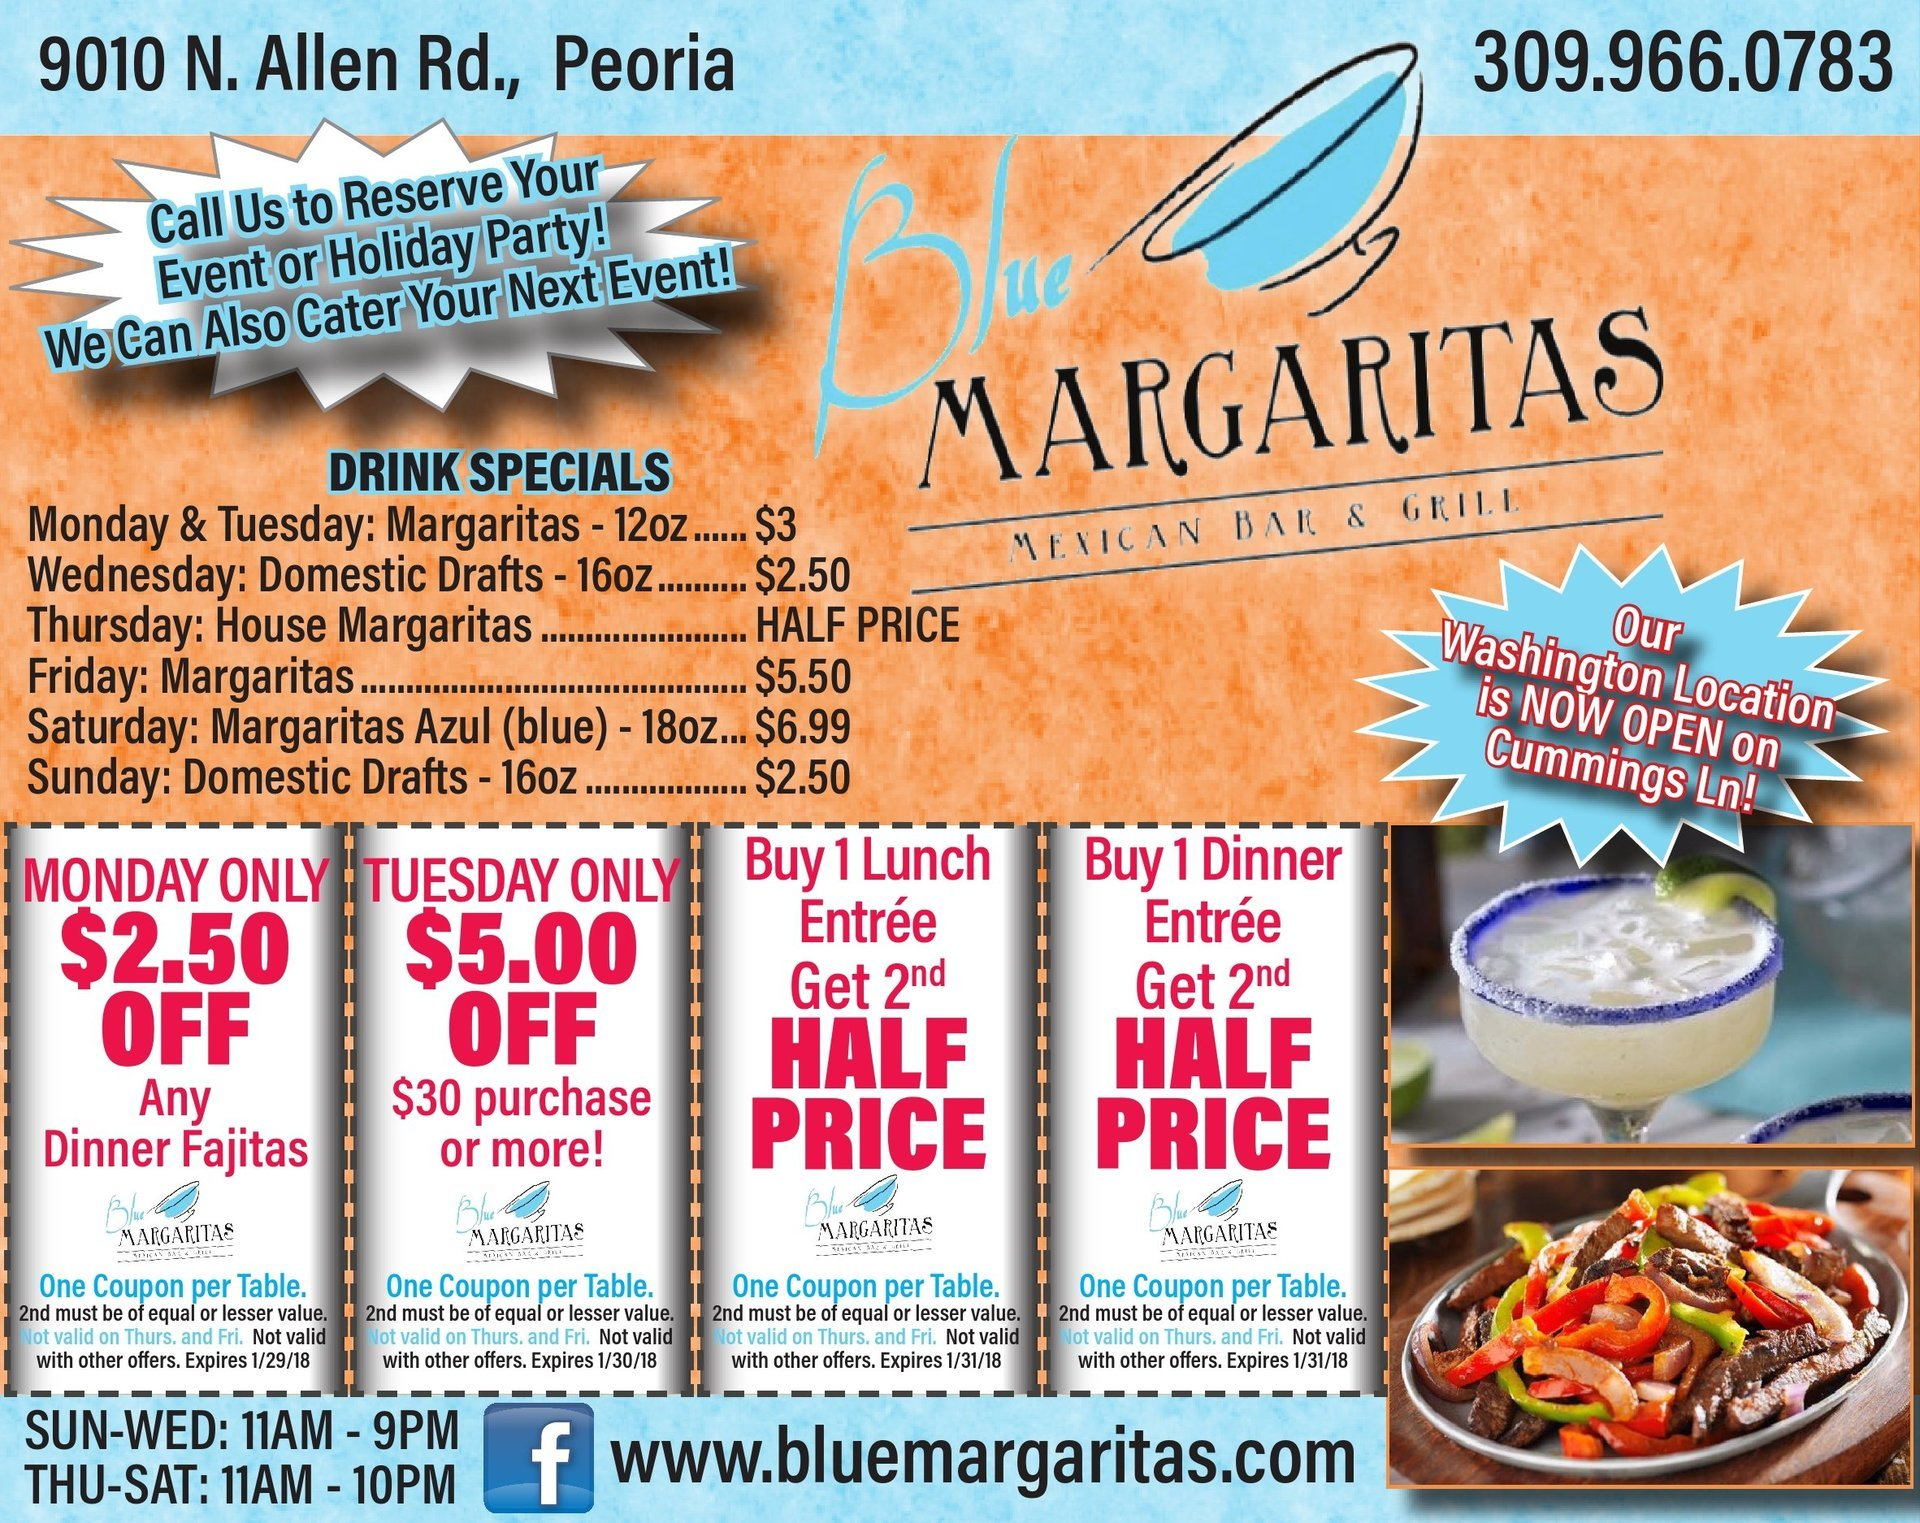 Blue Margaritas Mexican Bar and Grill coupons Peoria, IL